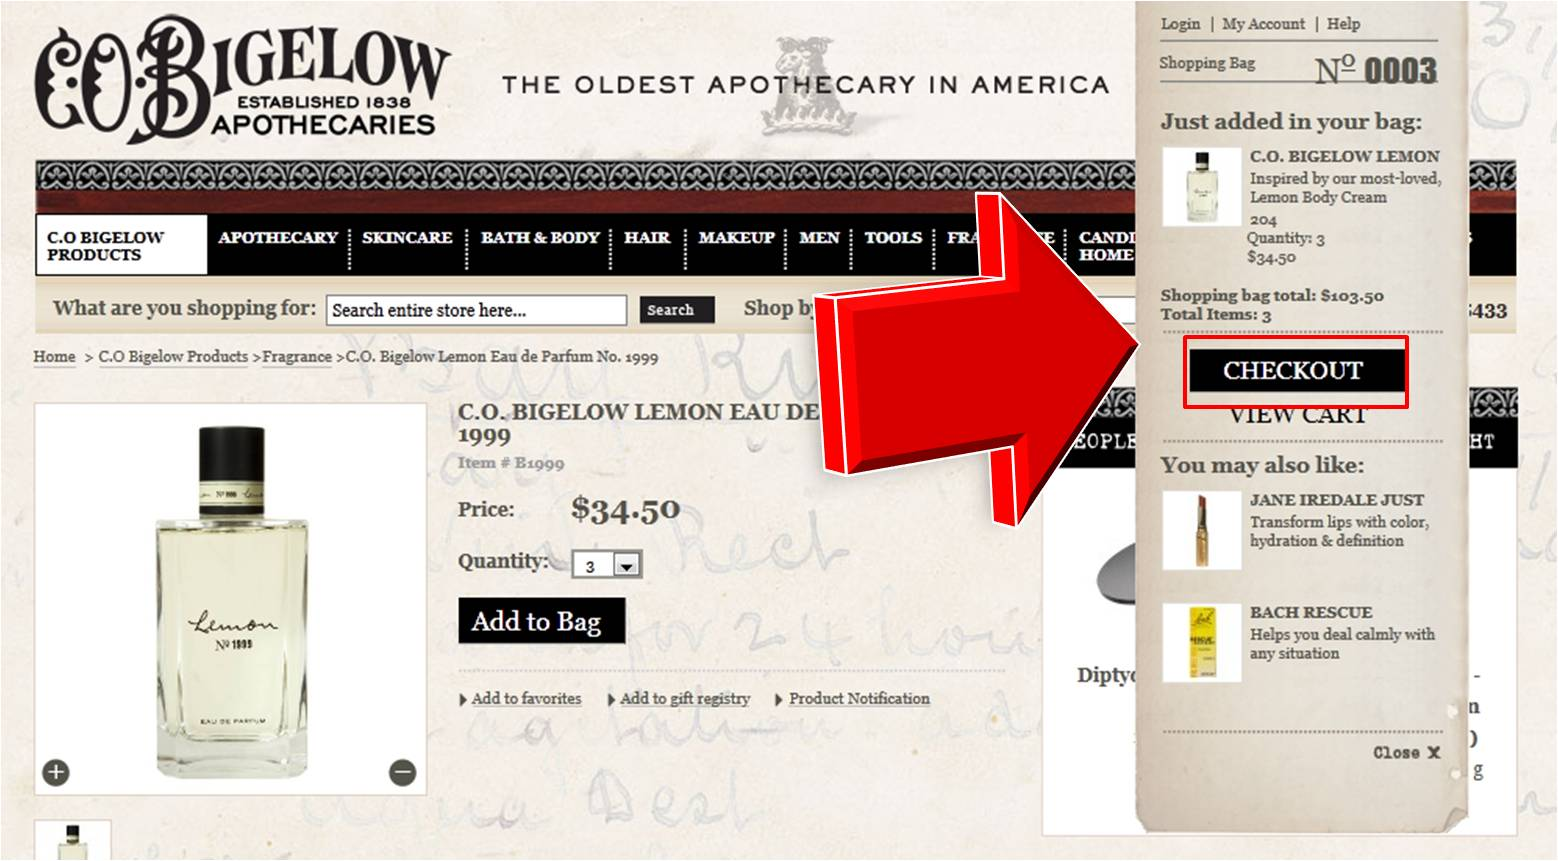 Take 20% Off W/ C O Bigelow Coupon Code. Shop C.O. Bigelow and take advantage of outstanding apothecary savings! Act now and save 20% on C.O. Bigelow Premium Shave Cream. Click .